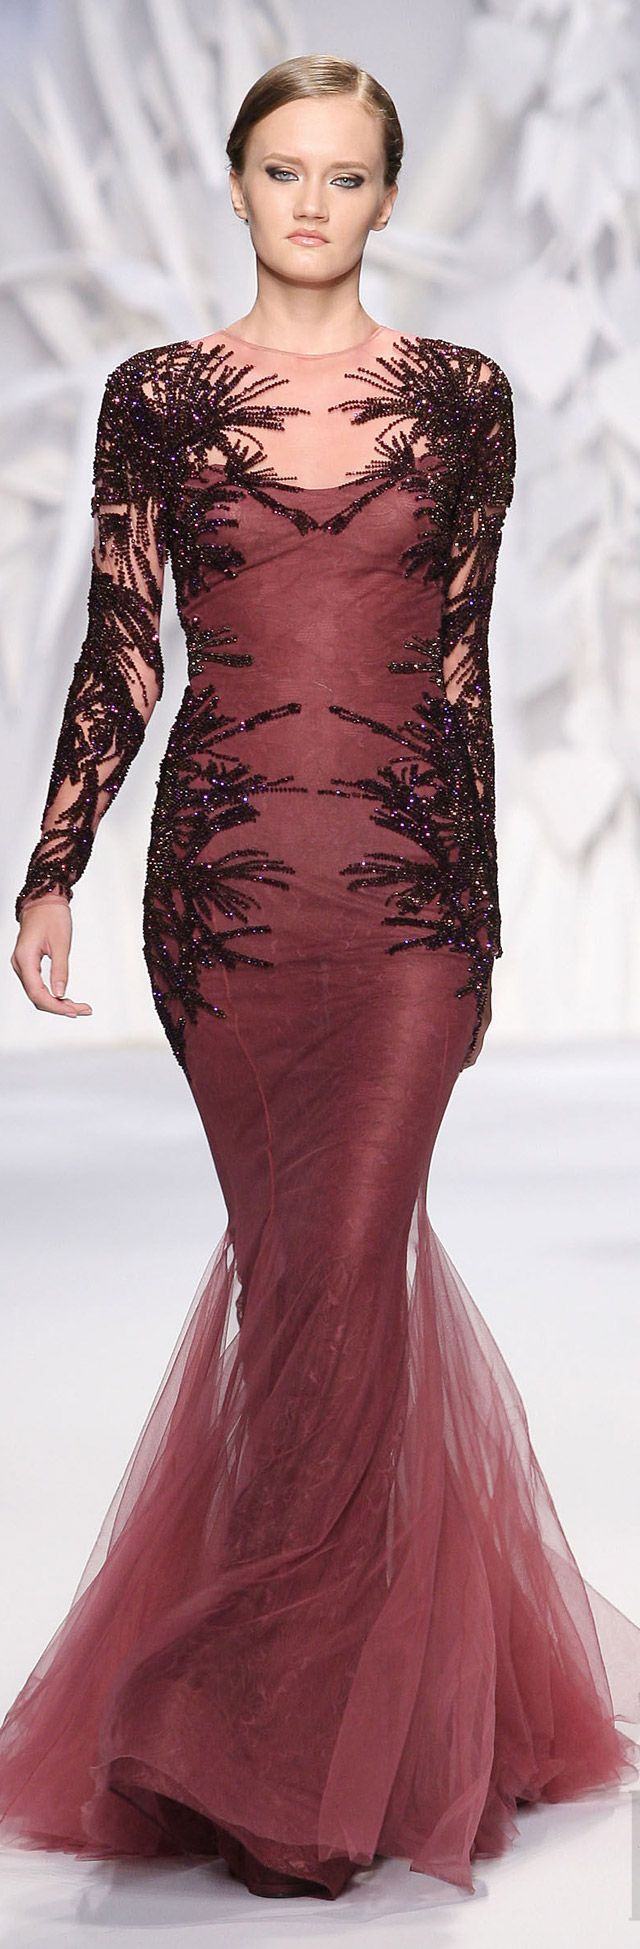 718 best images about beautiful dresses on pinterest for Haute couture price range